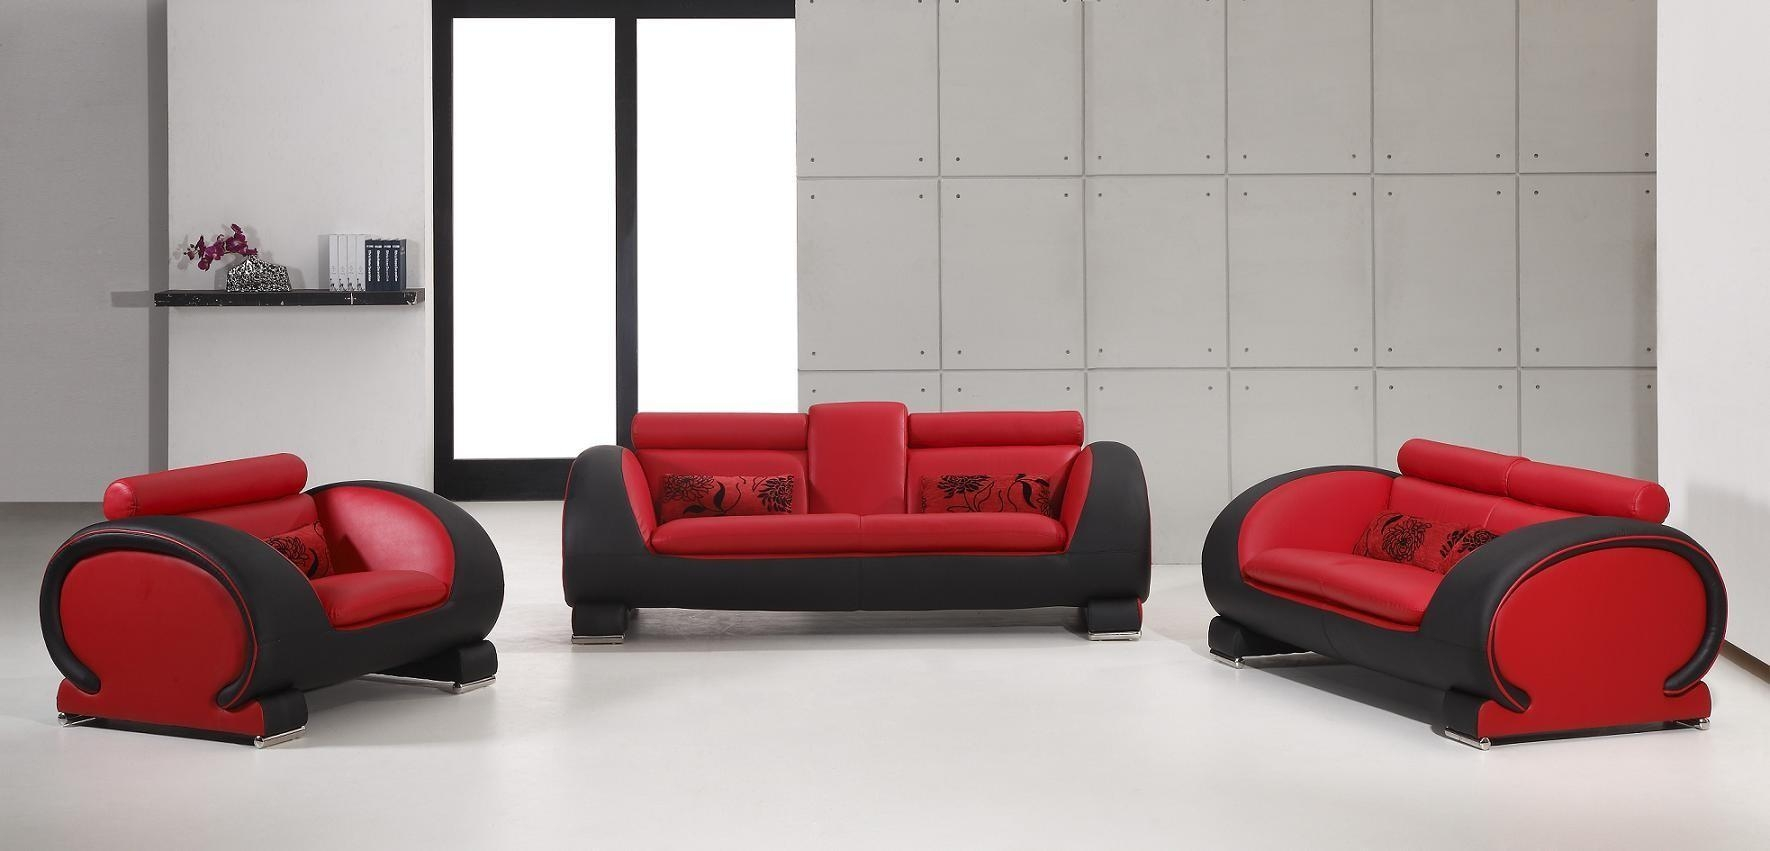 2811 – Red & Black Bonded Leather Sofa Set Nova Interiors In Black And Red Sofas (Image 2 of 20)